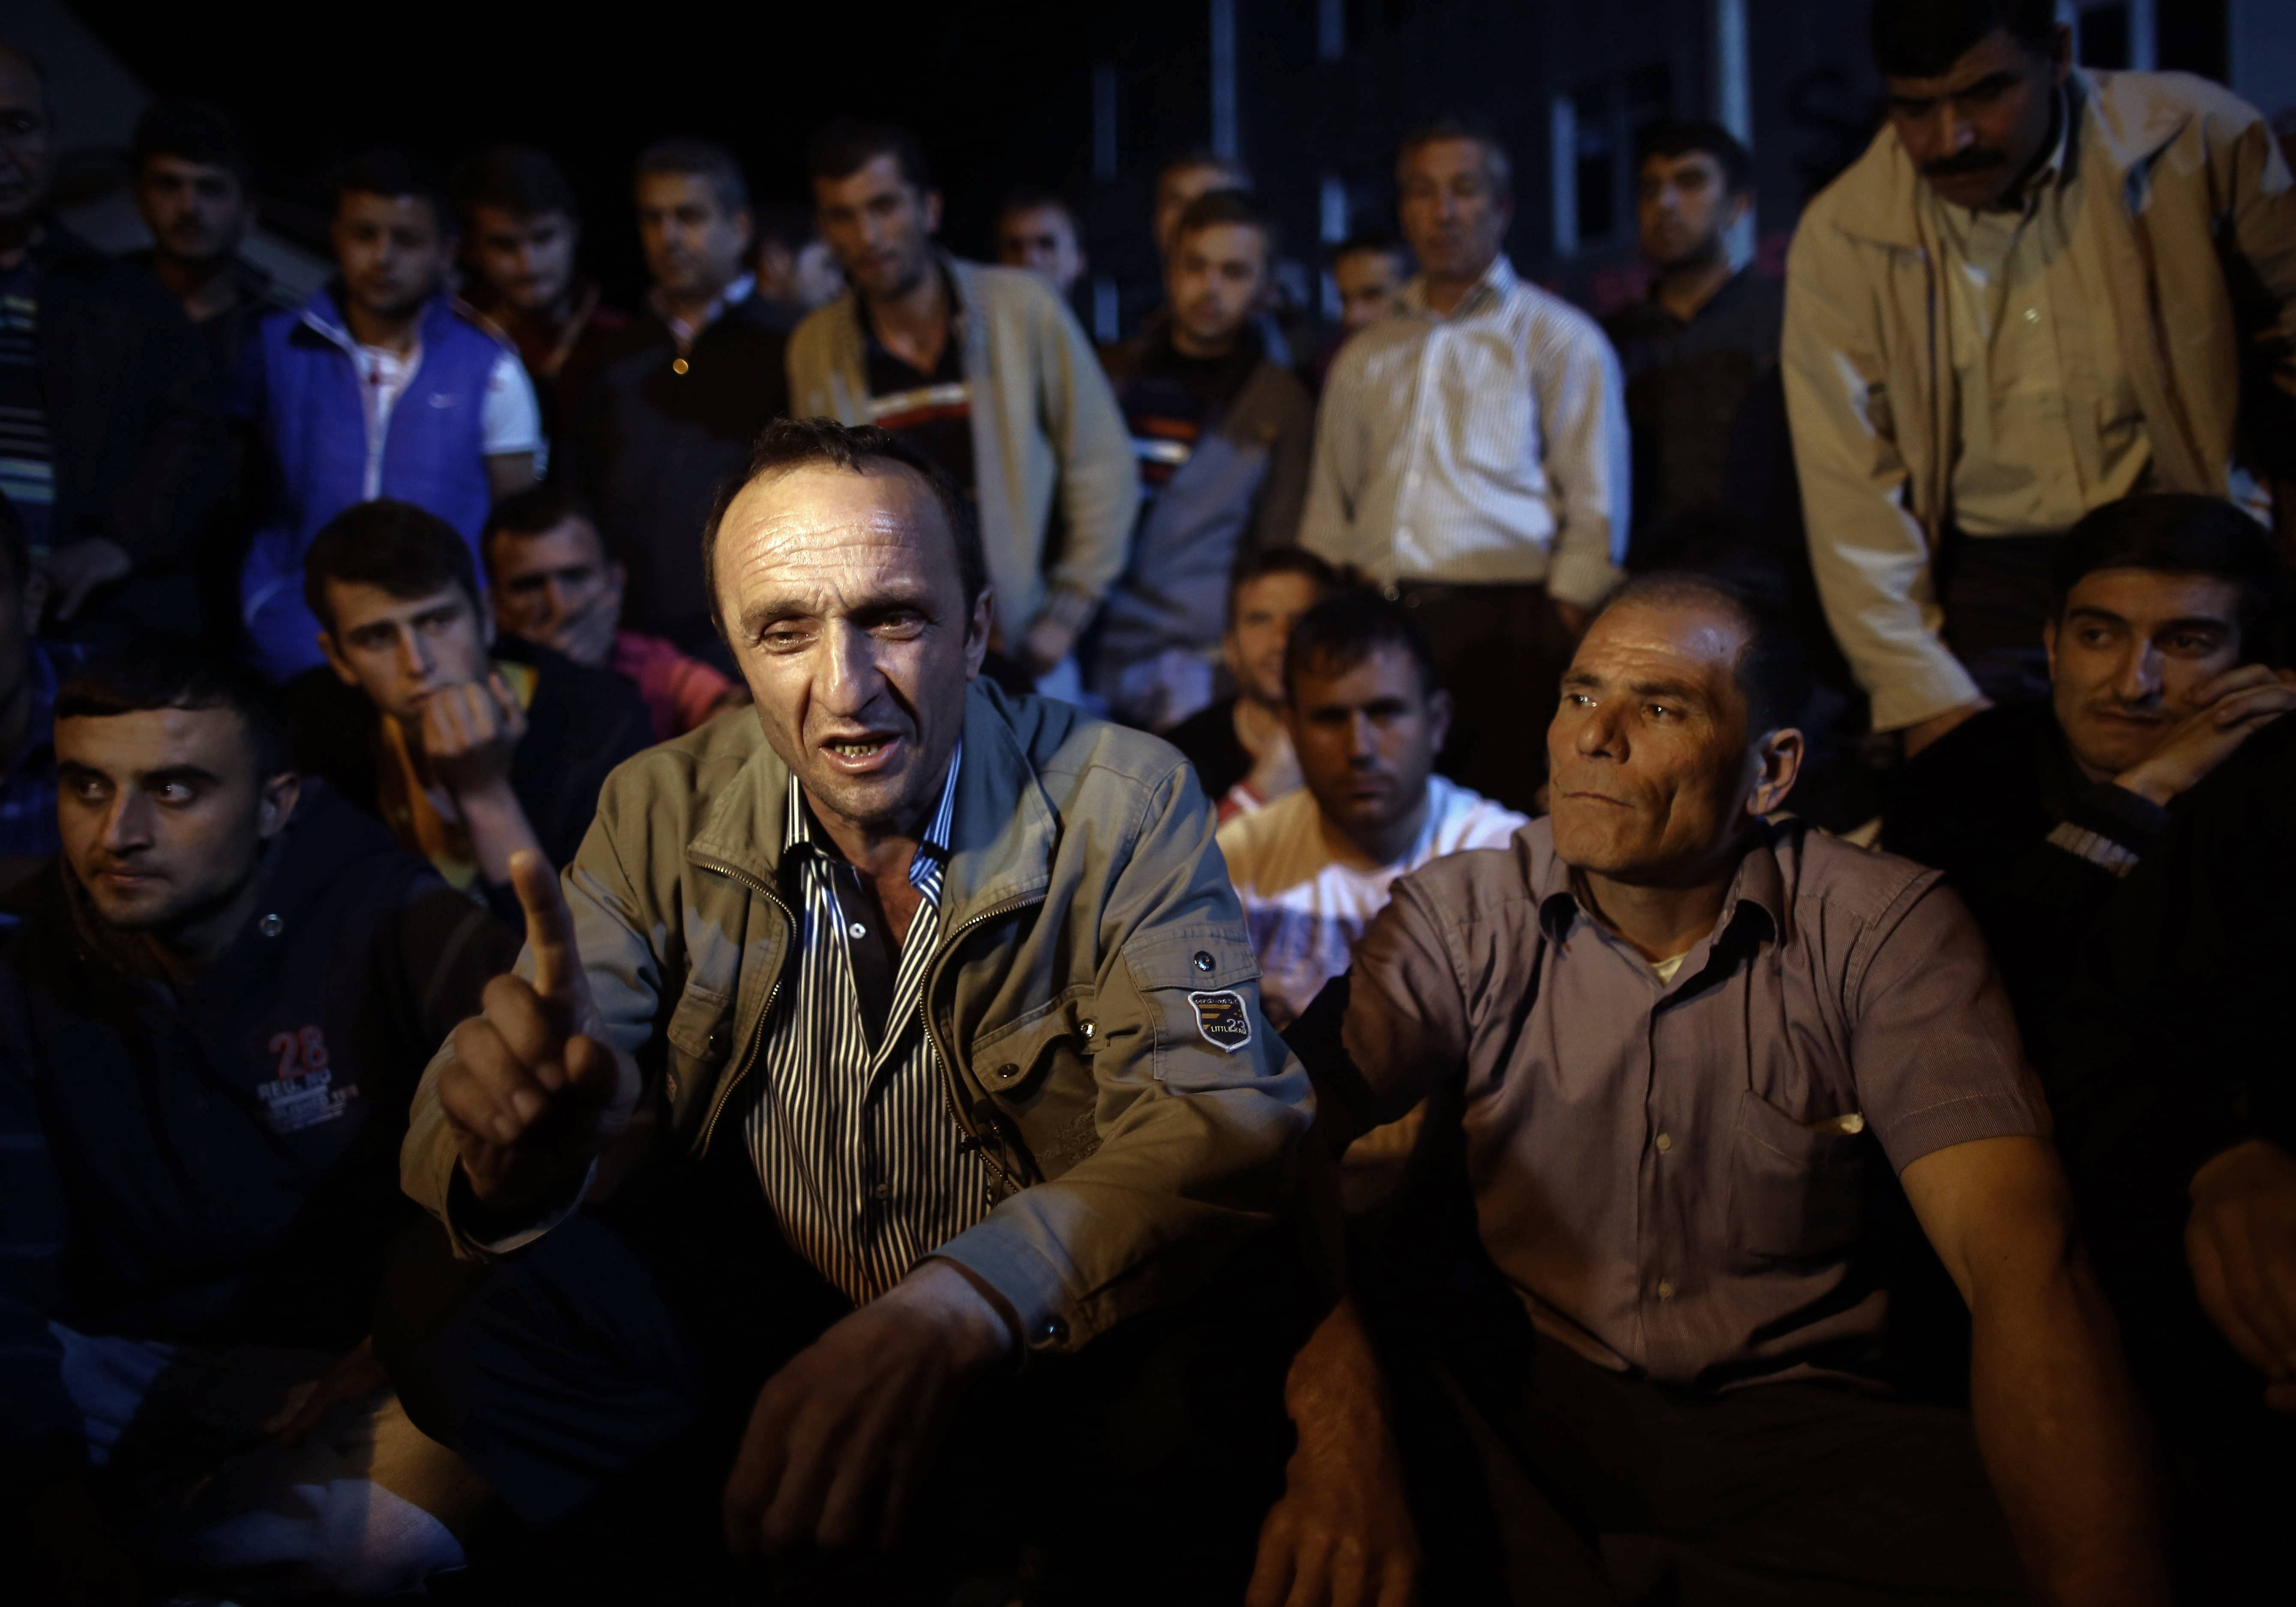 Miner Cetin Esmer speaks to the Associated Press as he joined fellow miners and their children to commemorate the Soma mine accident victims and protest the government's labor policy in Savastepe , Turkey, late Friday.